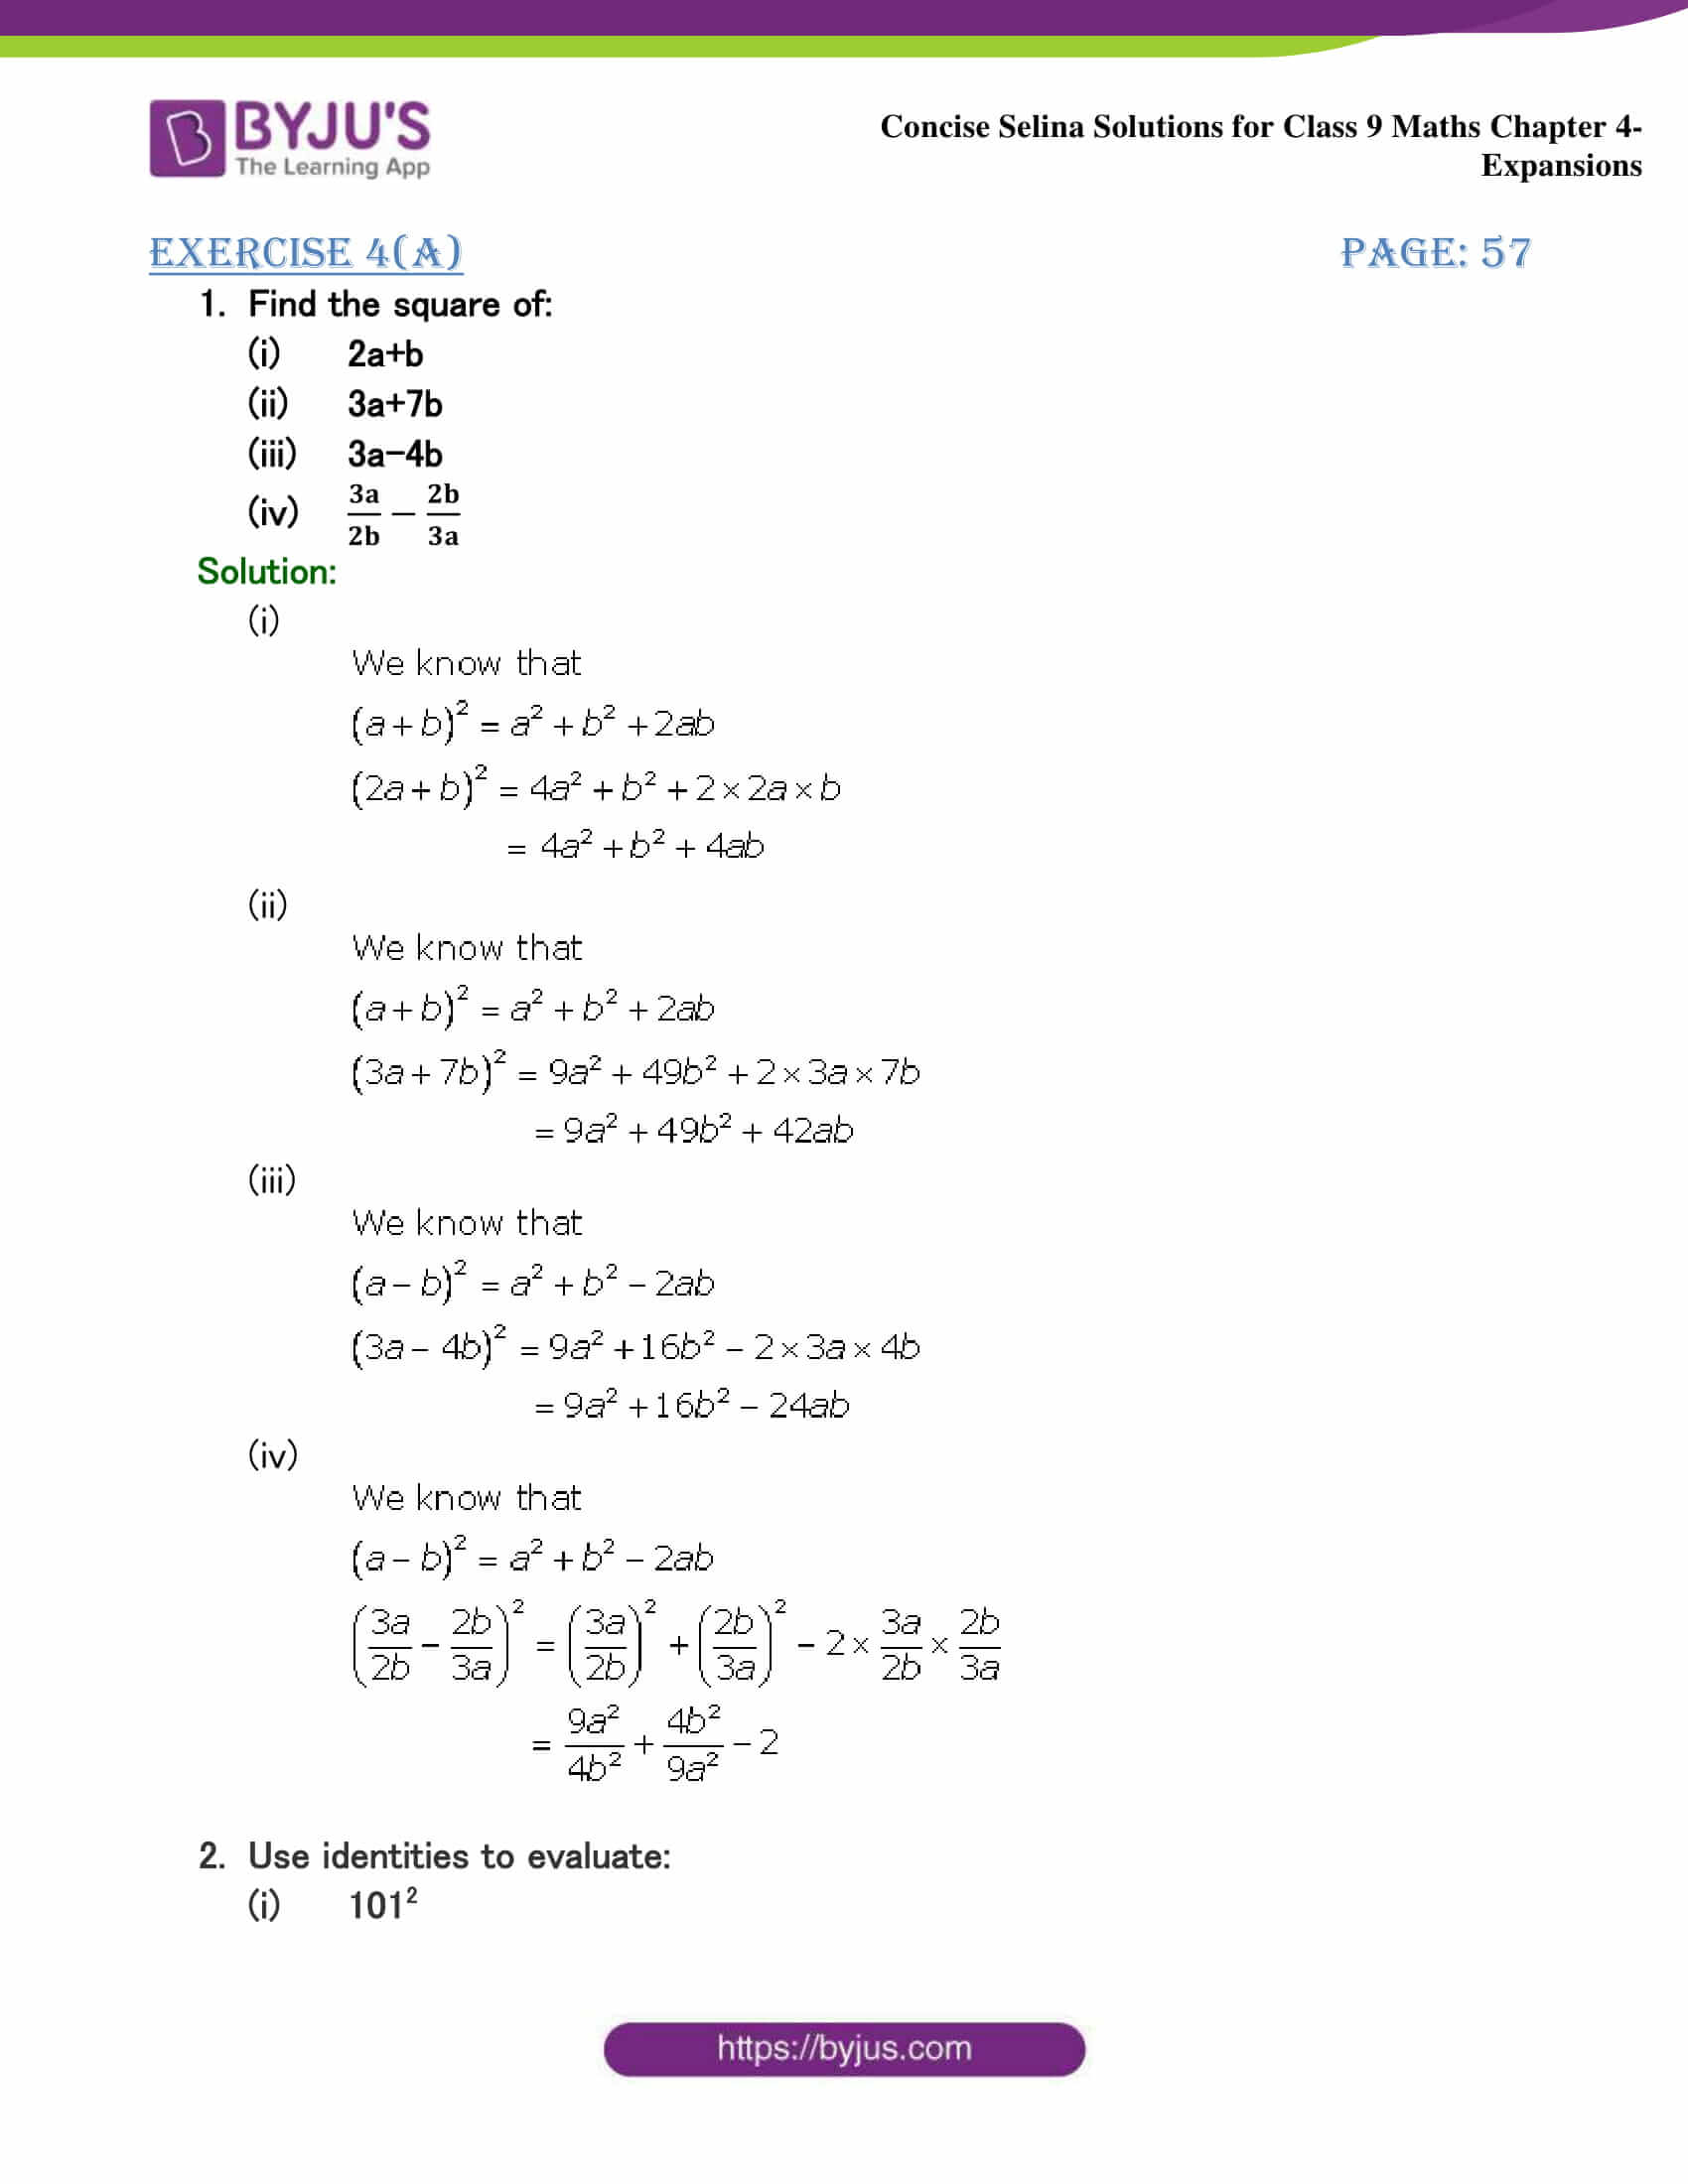 Selina Solutions Class 9 Maths Chapter 4 Expansions part 01